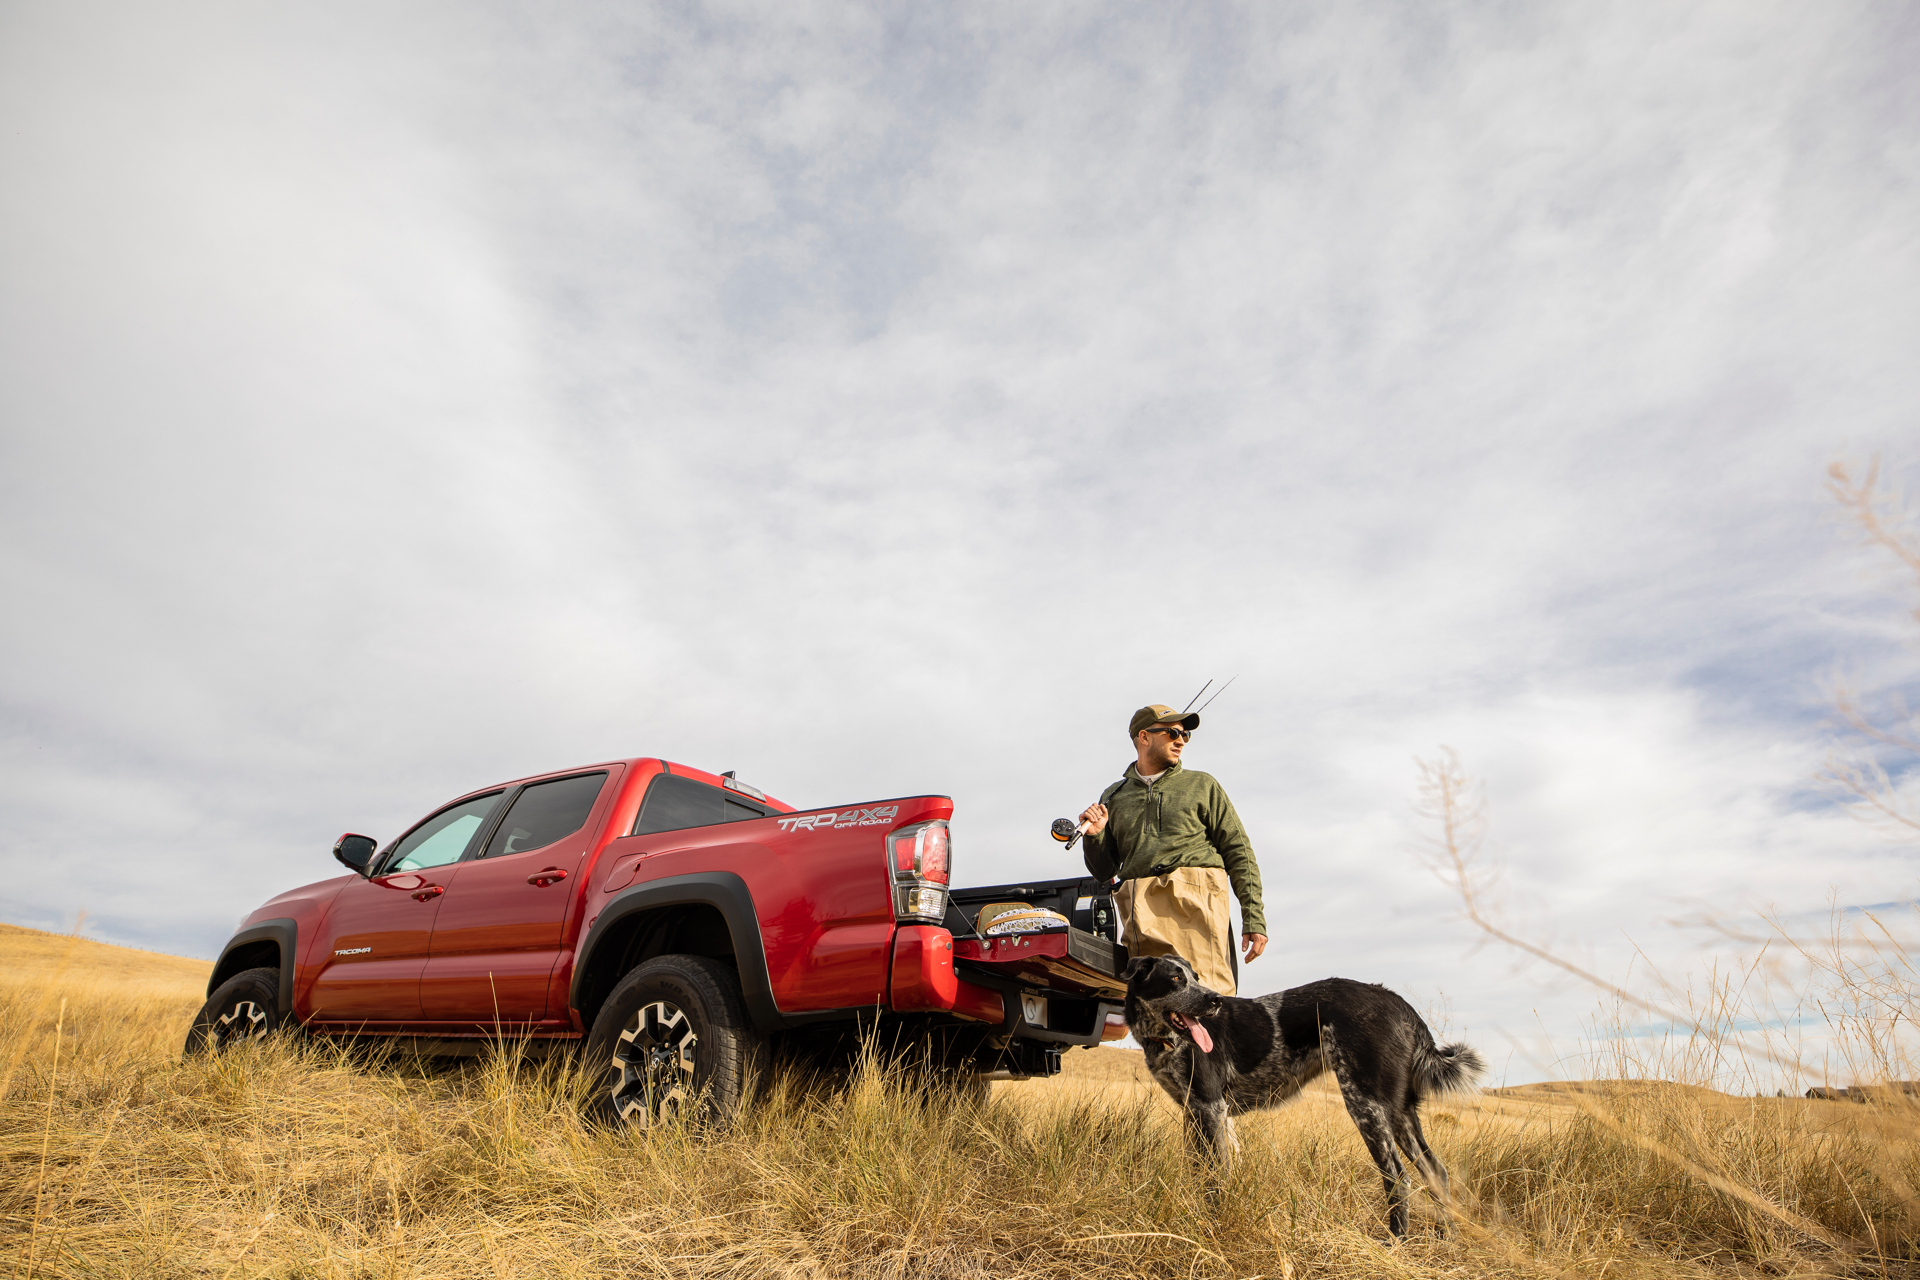 hunting-man-and-dog-next-to-Toyota-truck